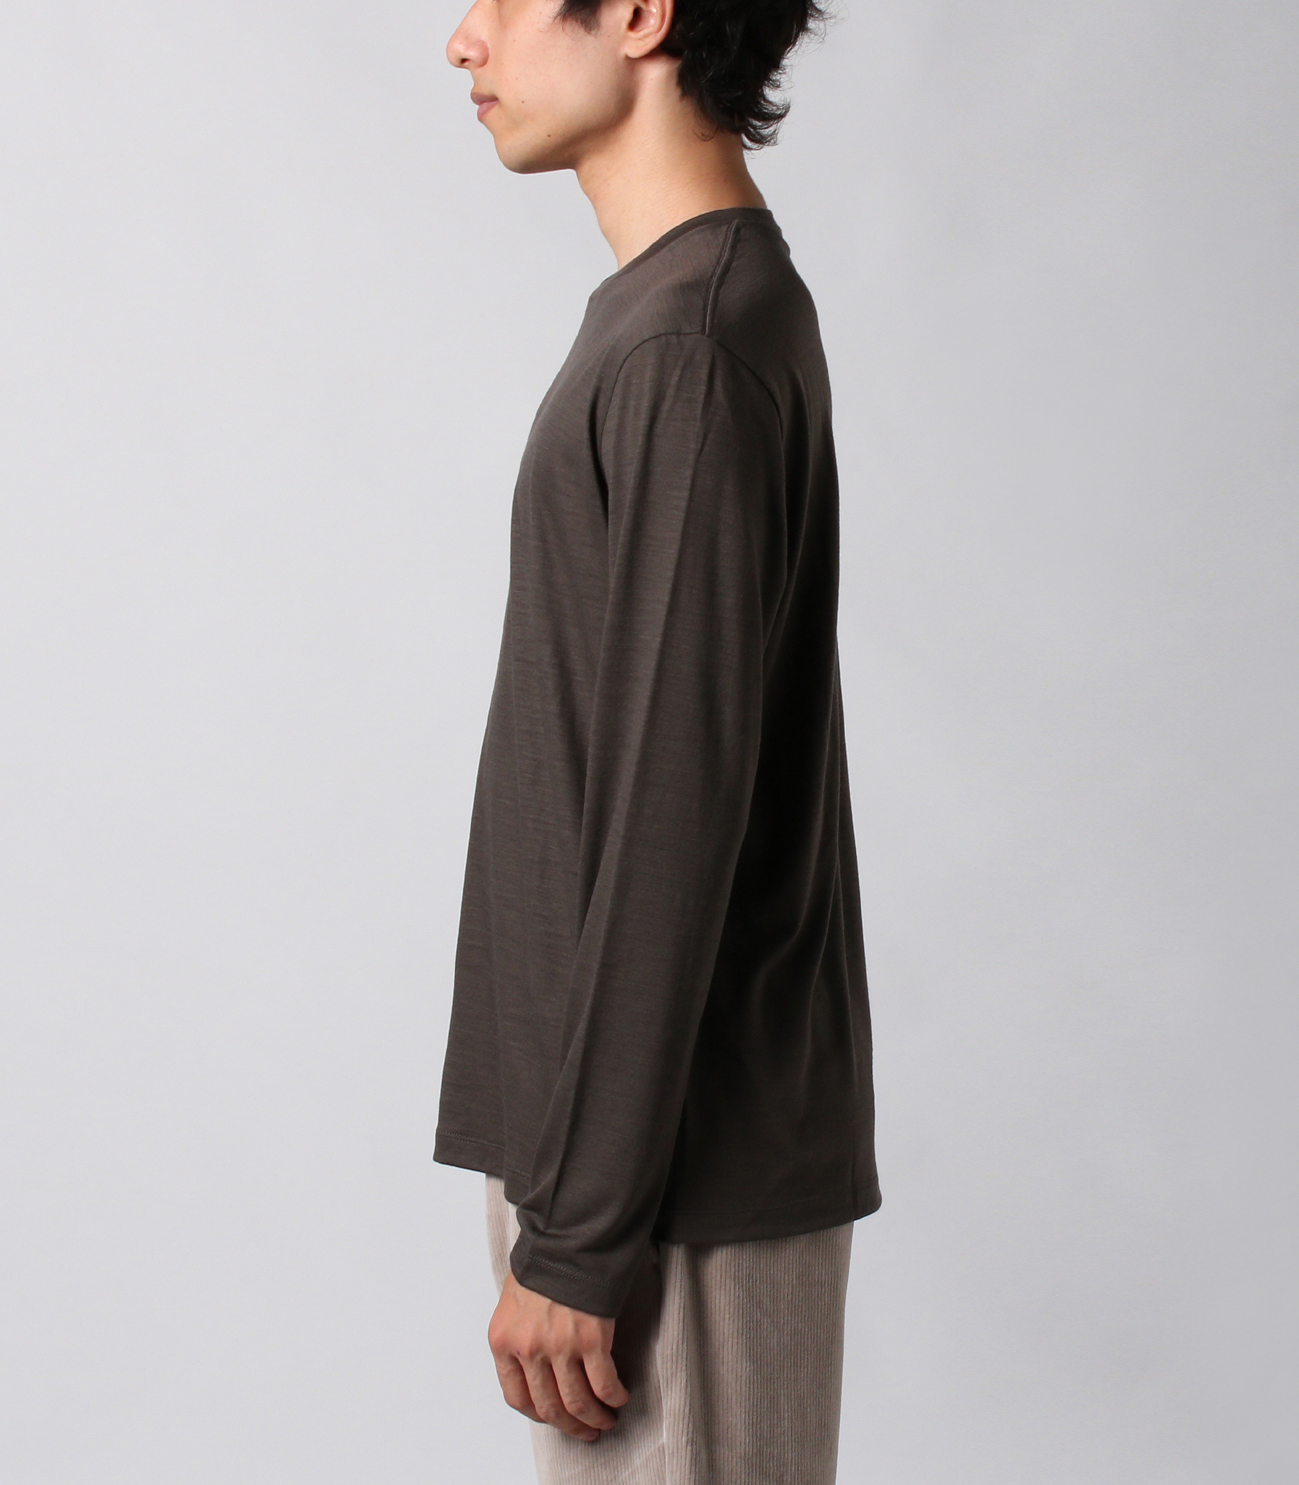 Washable silky dry jersey crewneck 詳細画像 brown 3